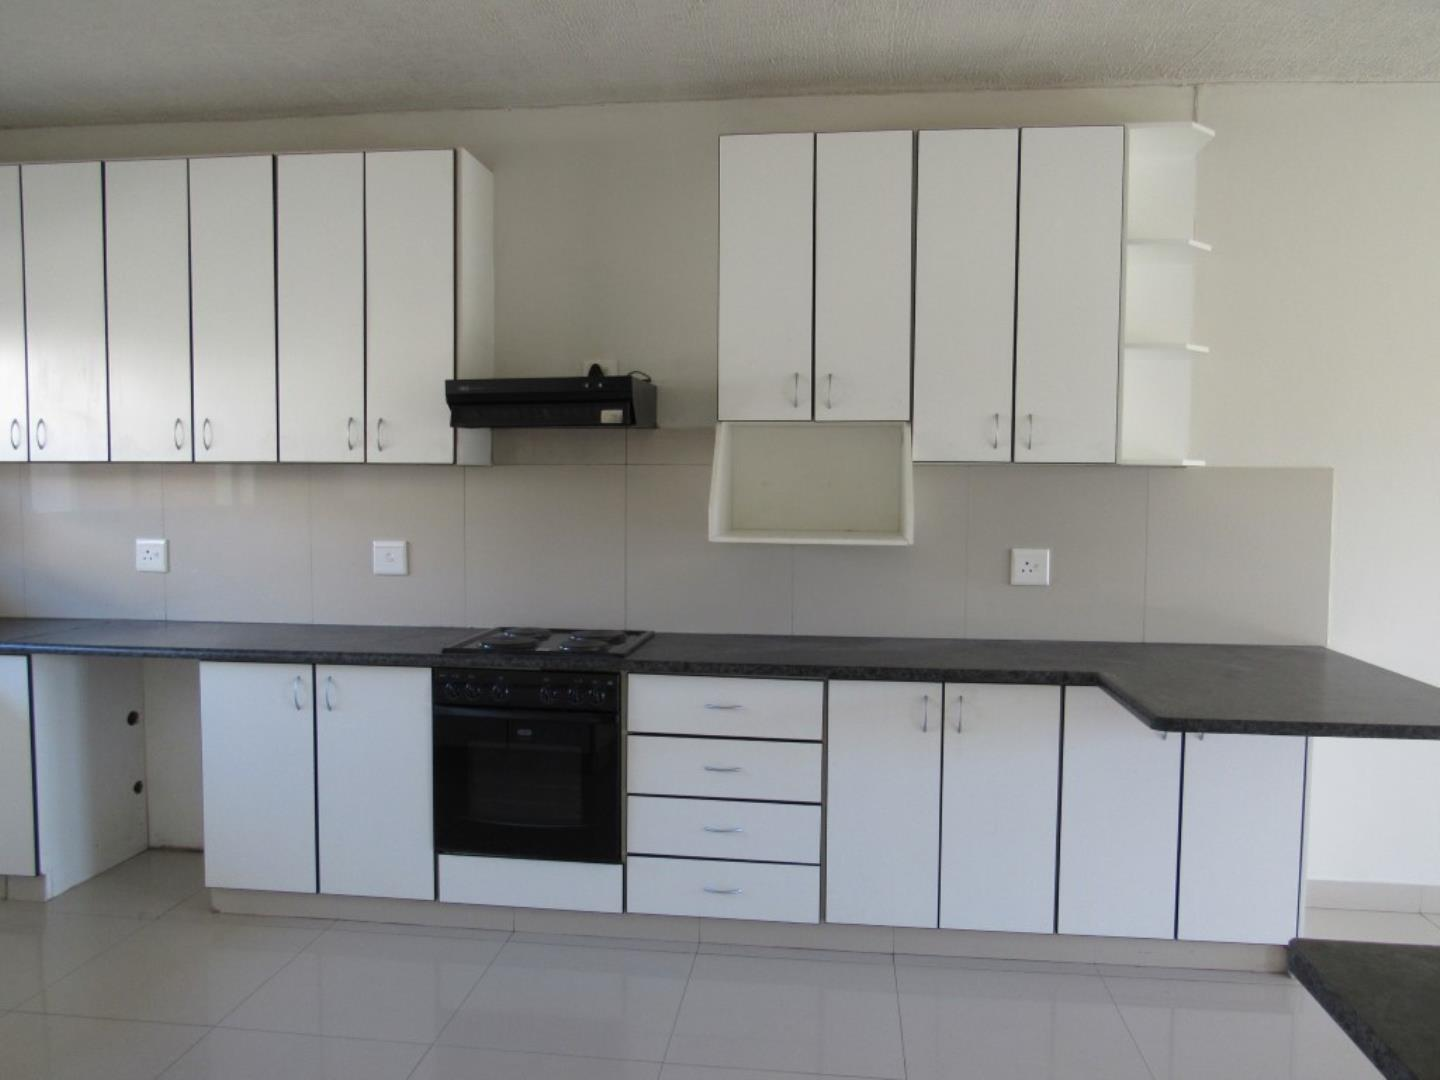 3 Bedroom  Townhouse for Sale in Swakopmund - Erongo